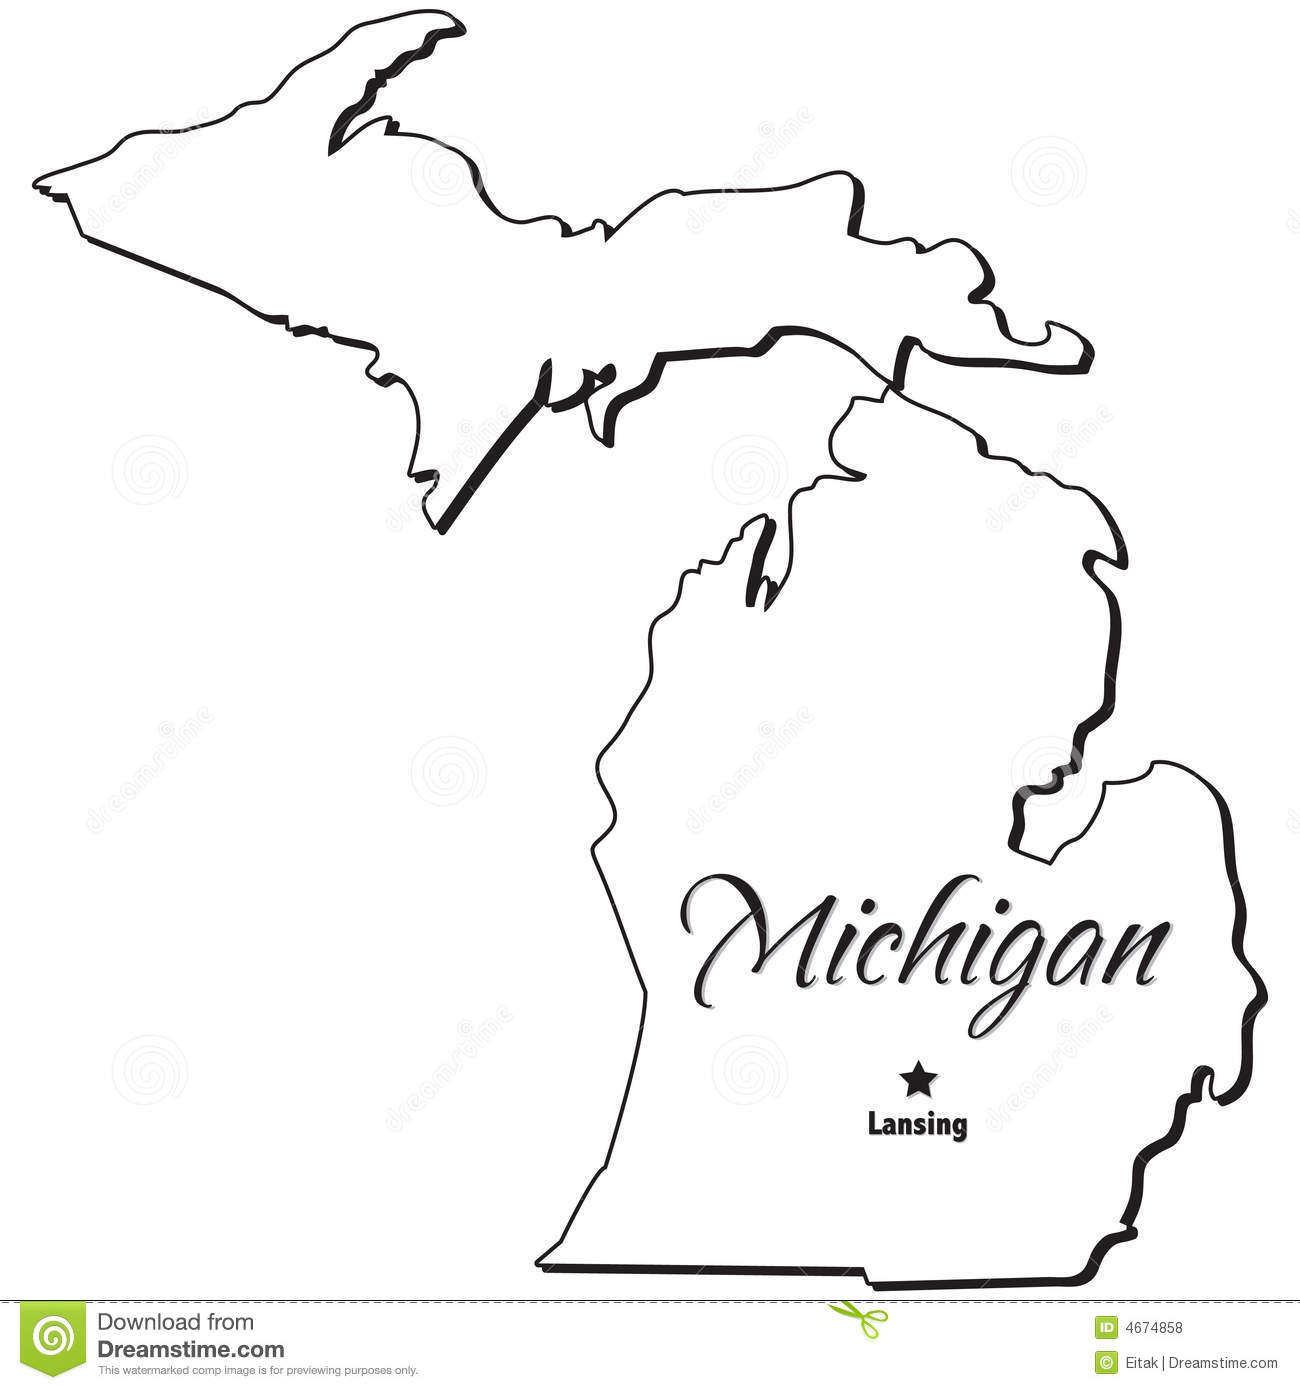 State of Michigan Outline.